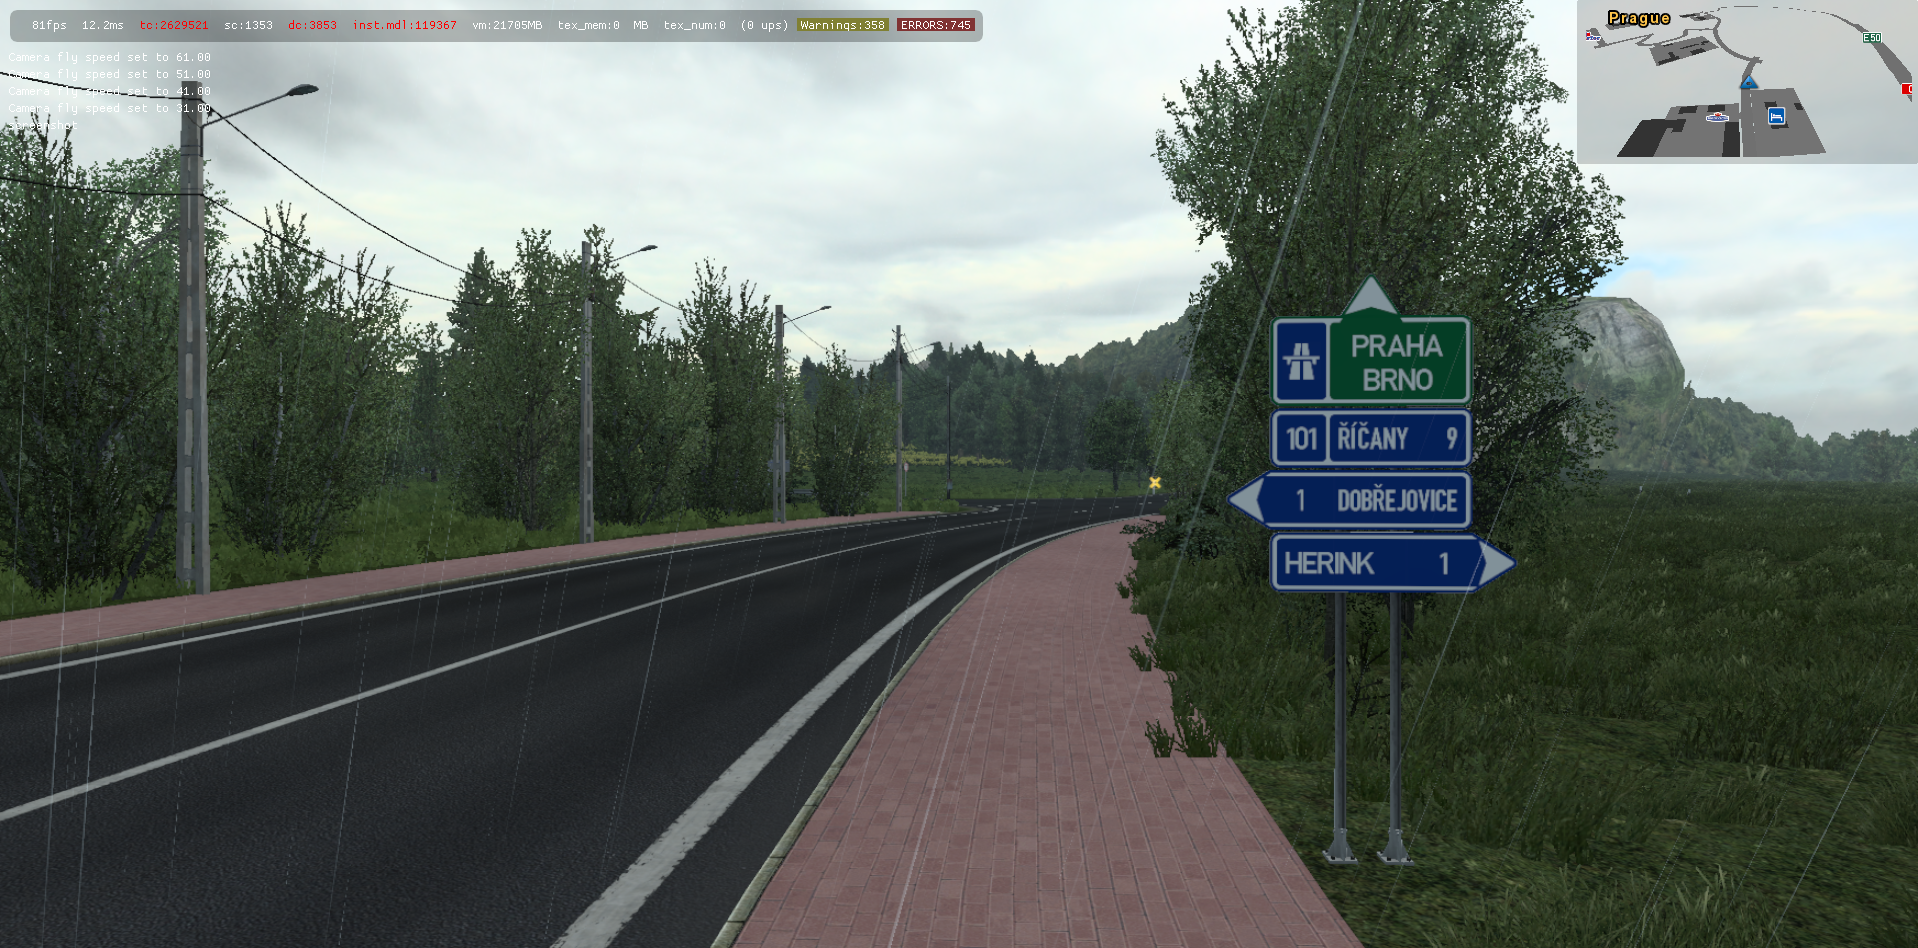 ets2_20210621_211010_00.png